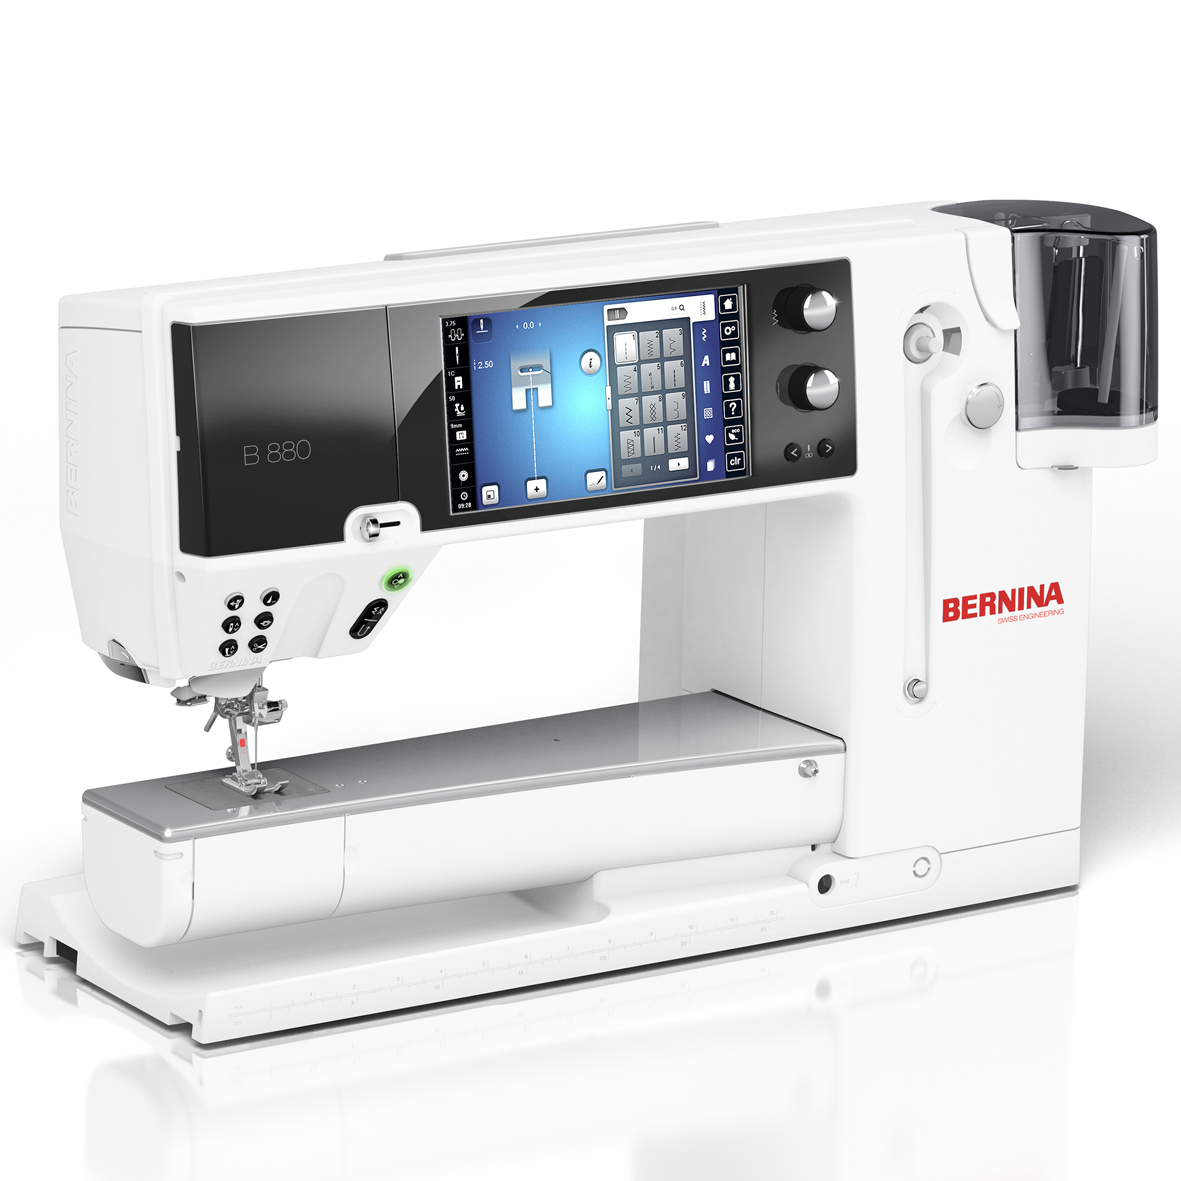 Bernina Sewing and Embroidery Accessories - Choose Your